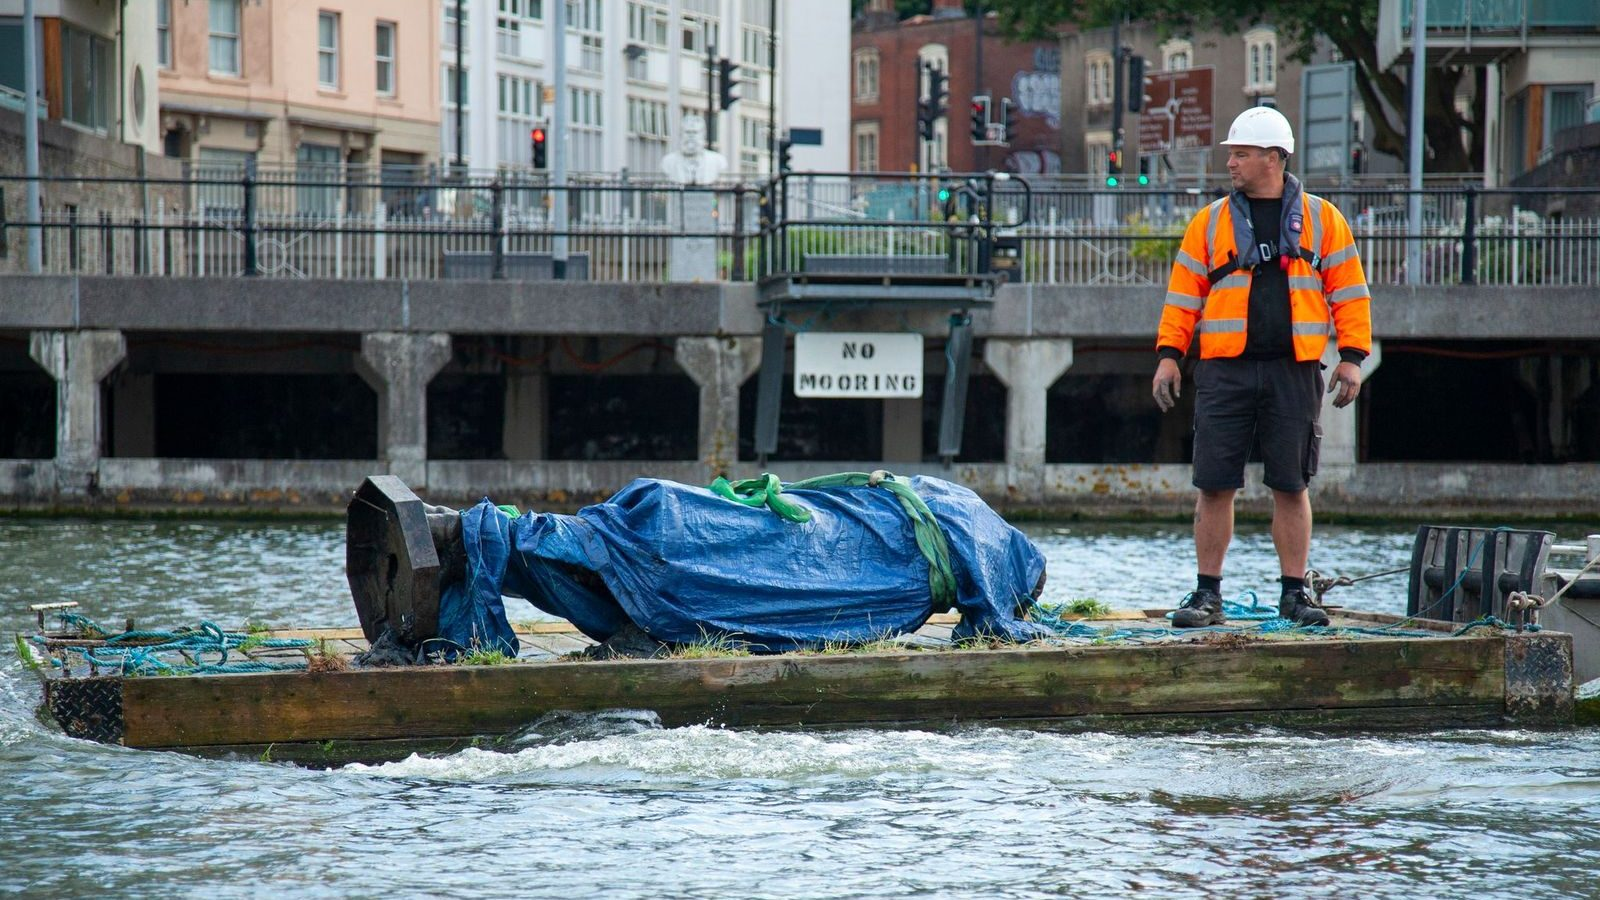 The statue will be displayed as it looked when it was retrieved from Bristol harbour last year